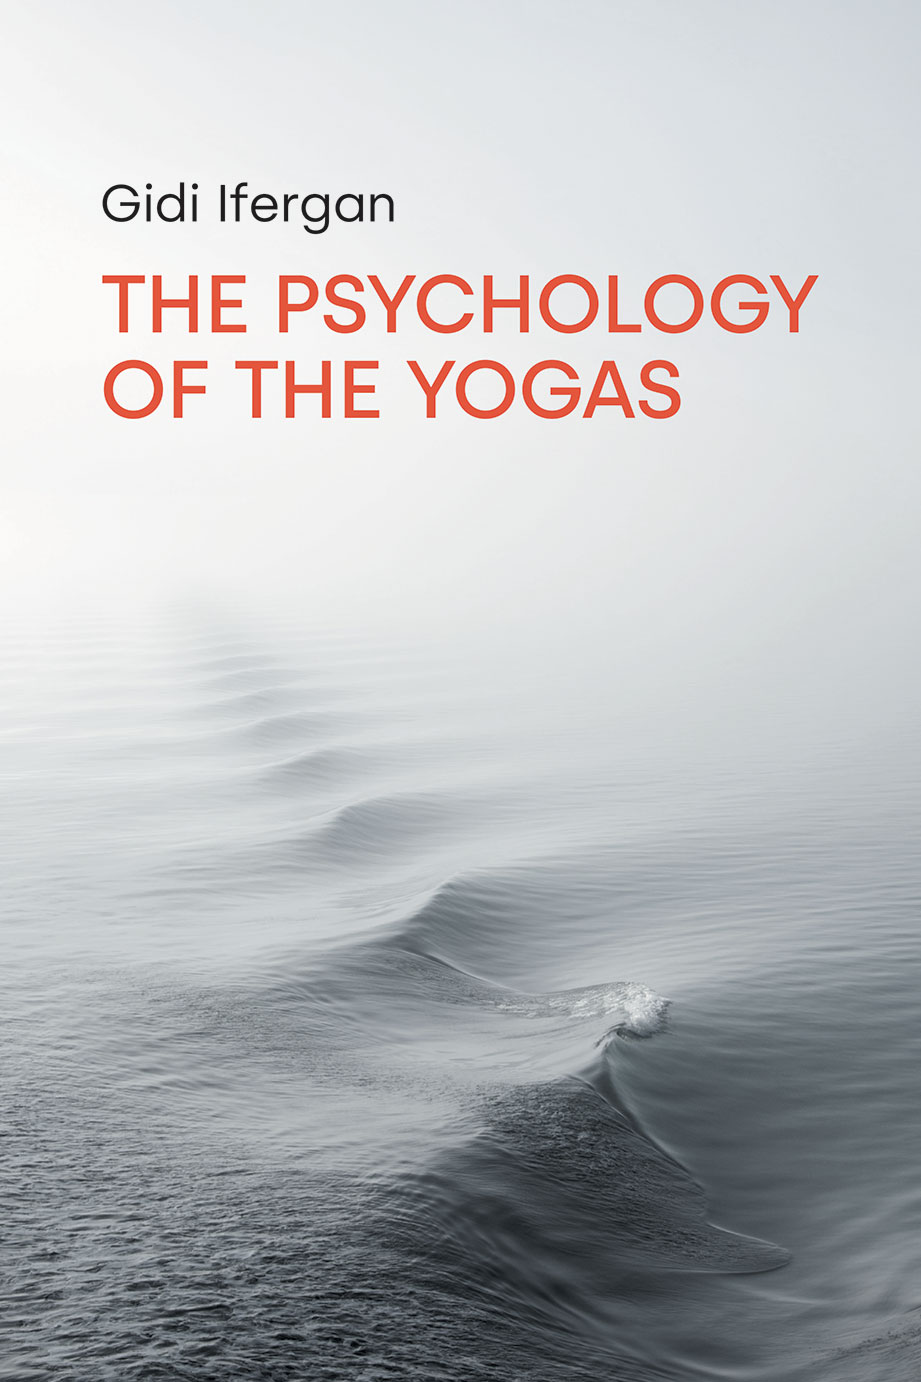 The Psychology of the Yogas